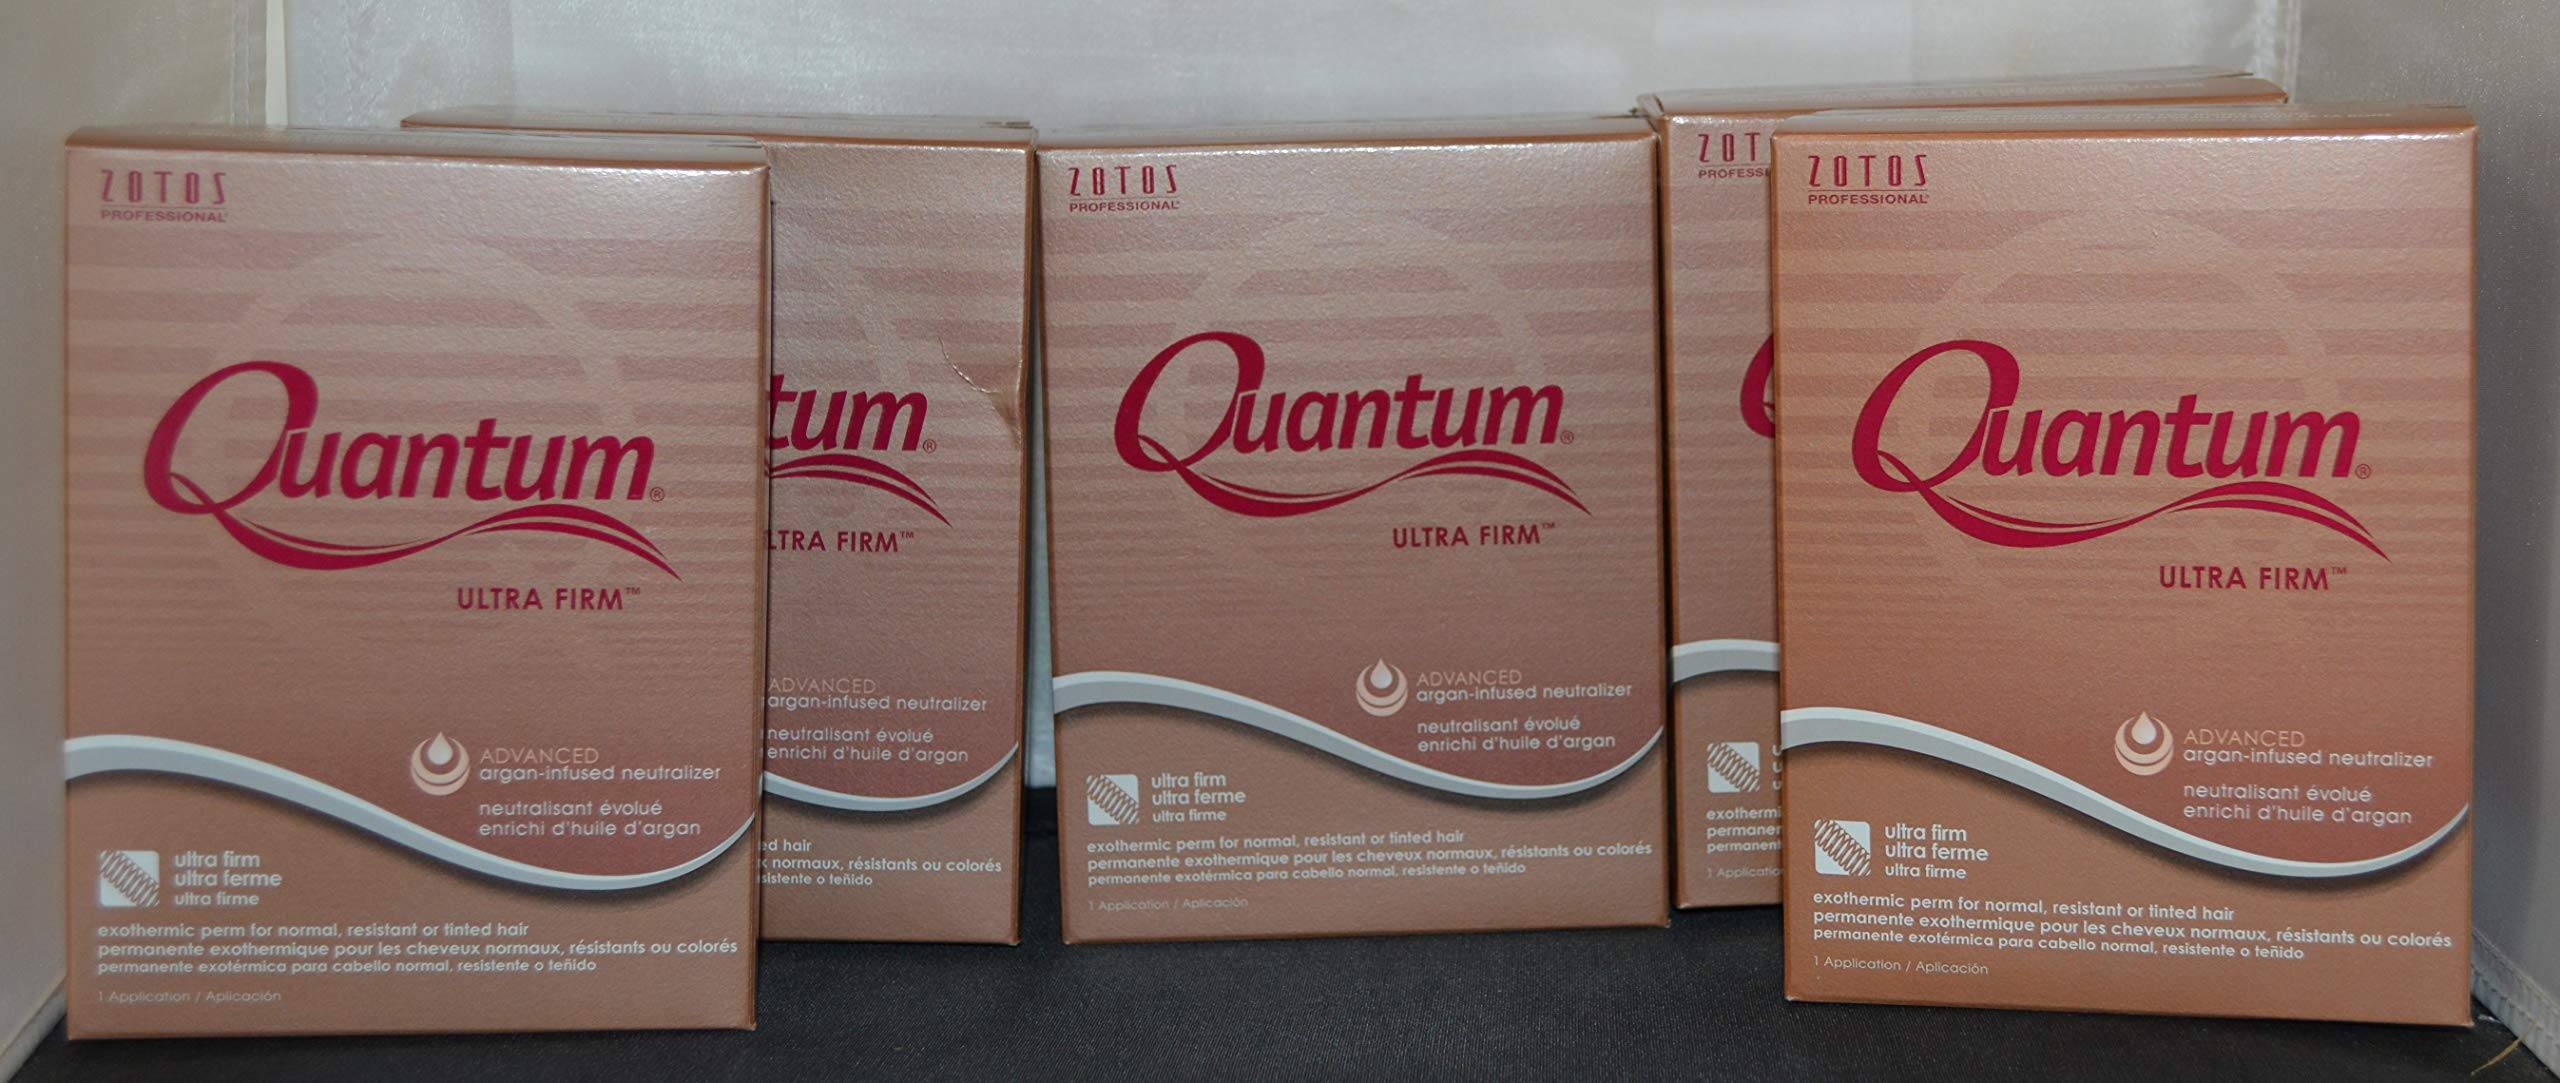 Quantum Ultra Firm Exothermic Perm for Normal, Resistant, or Tinted Hair - 5 pack